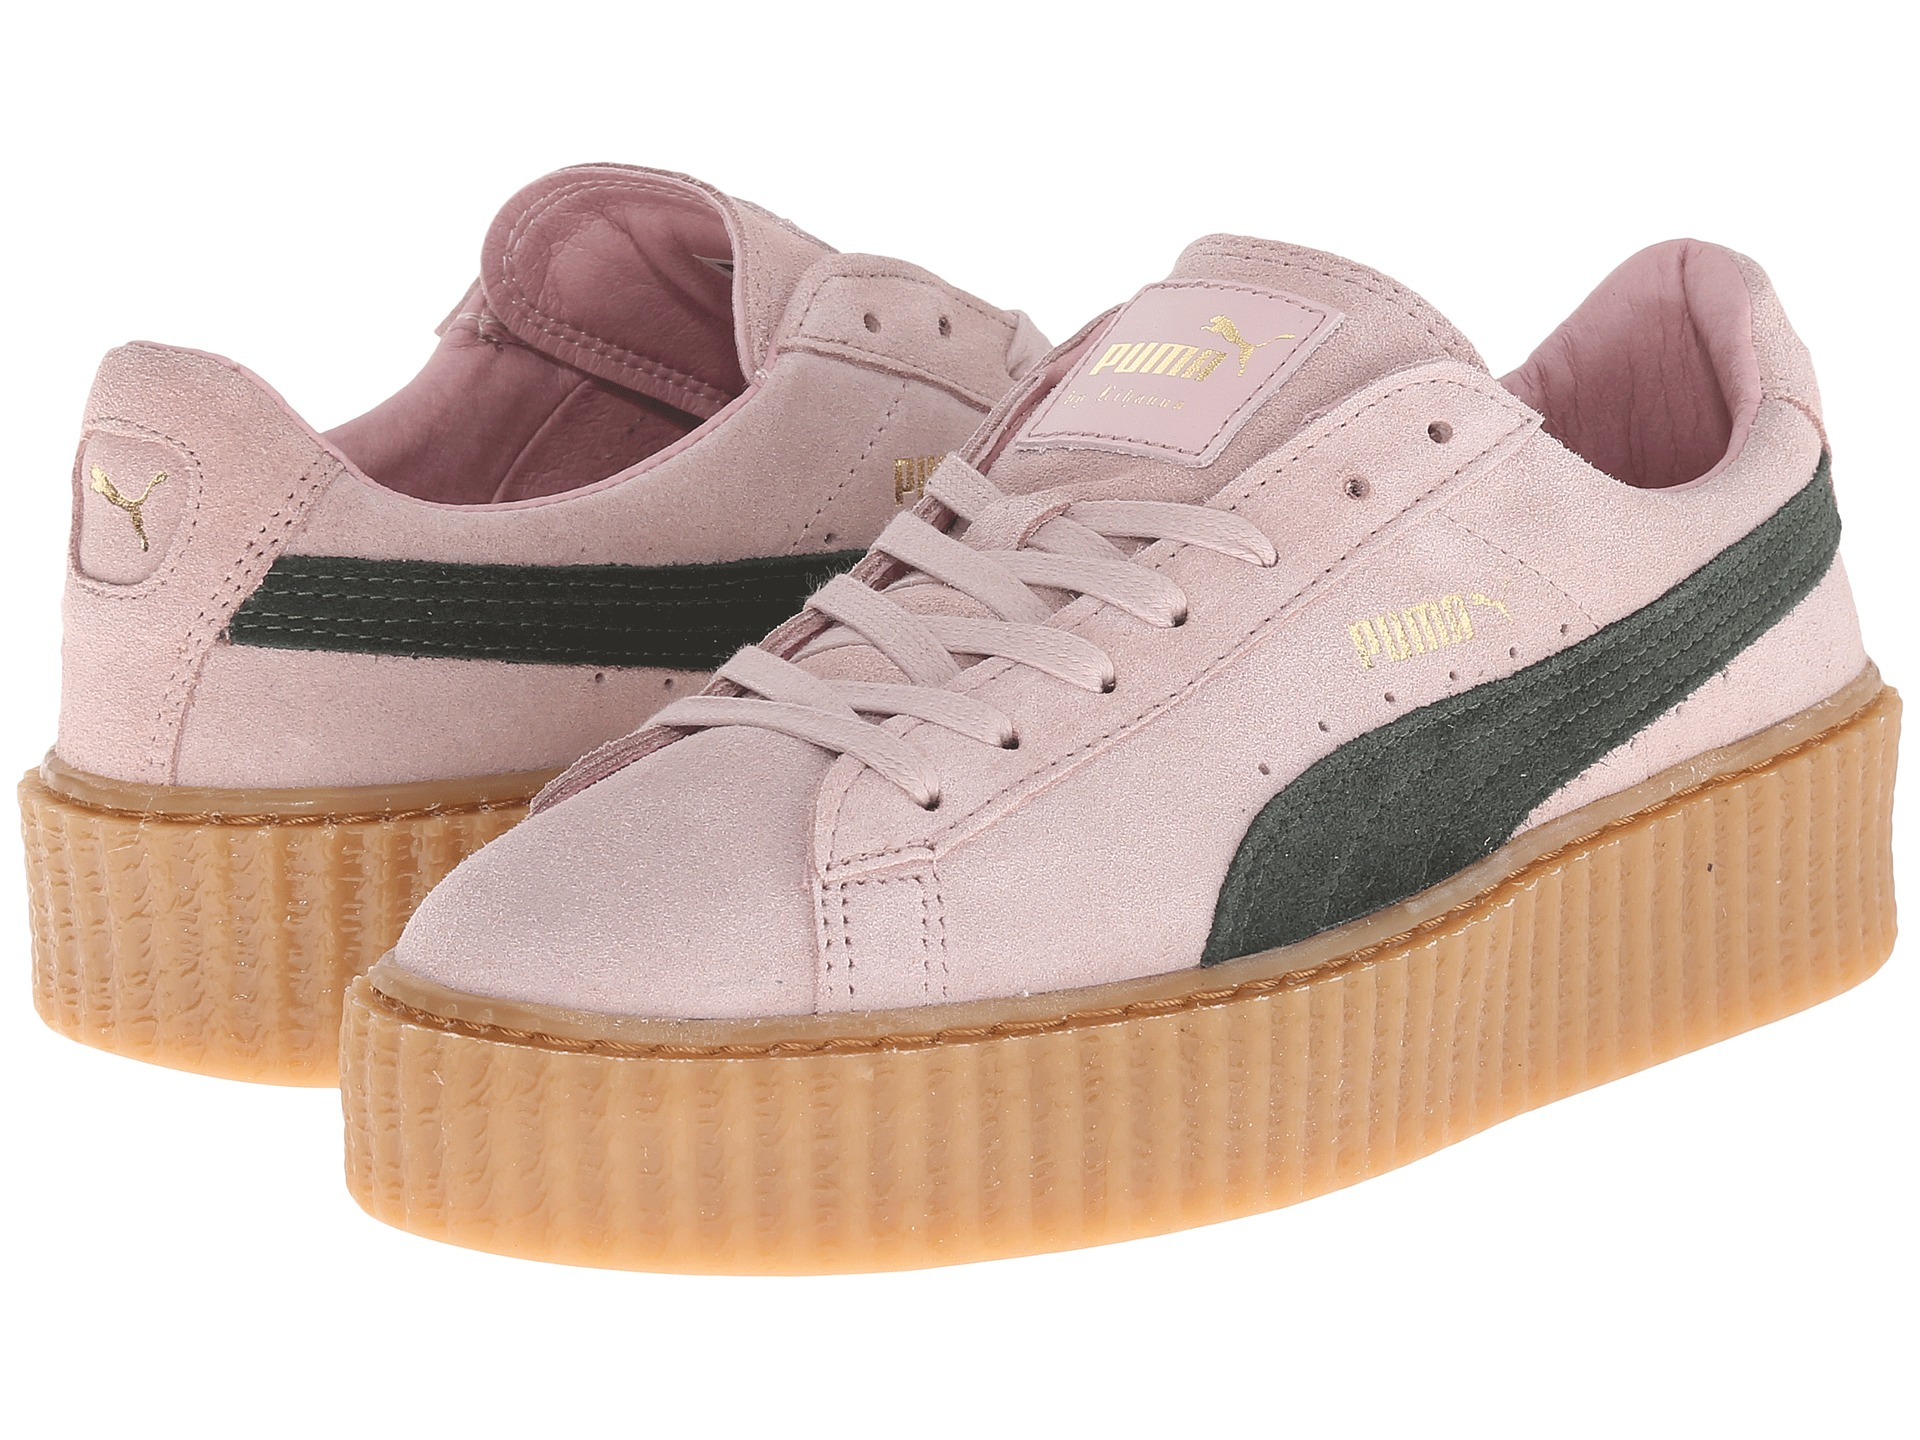 Puma Creepers Womens Pink